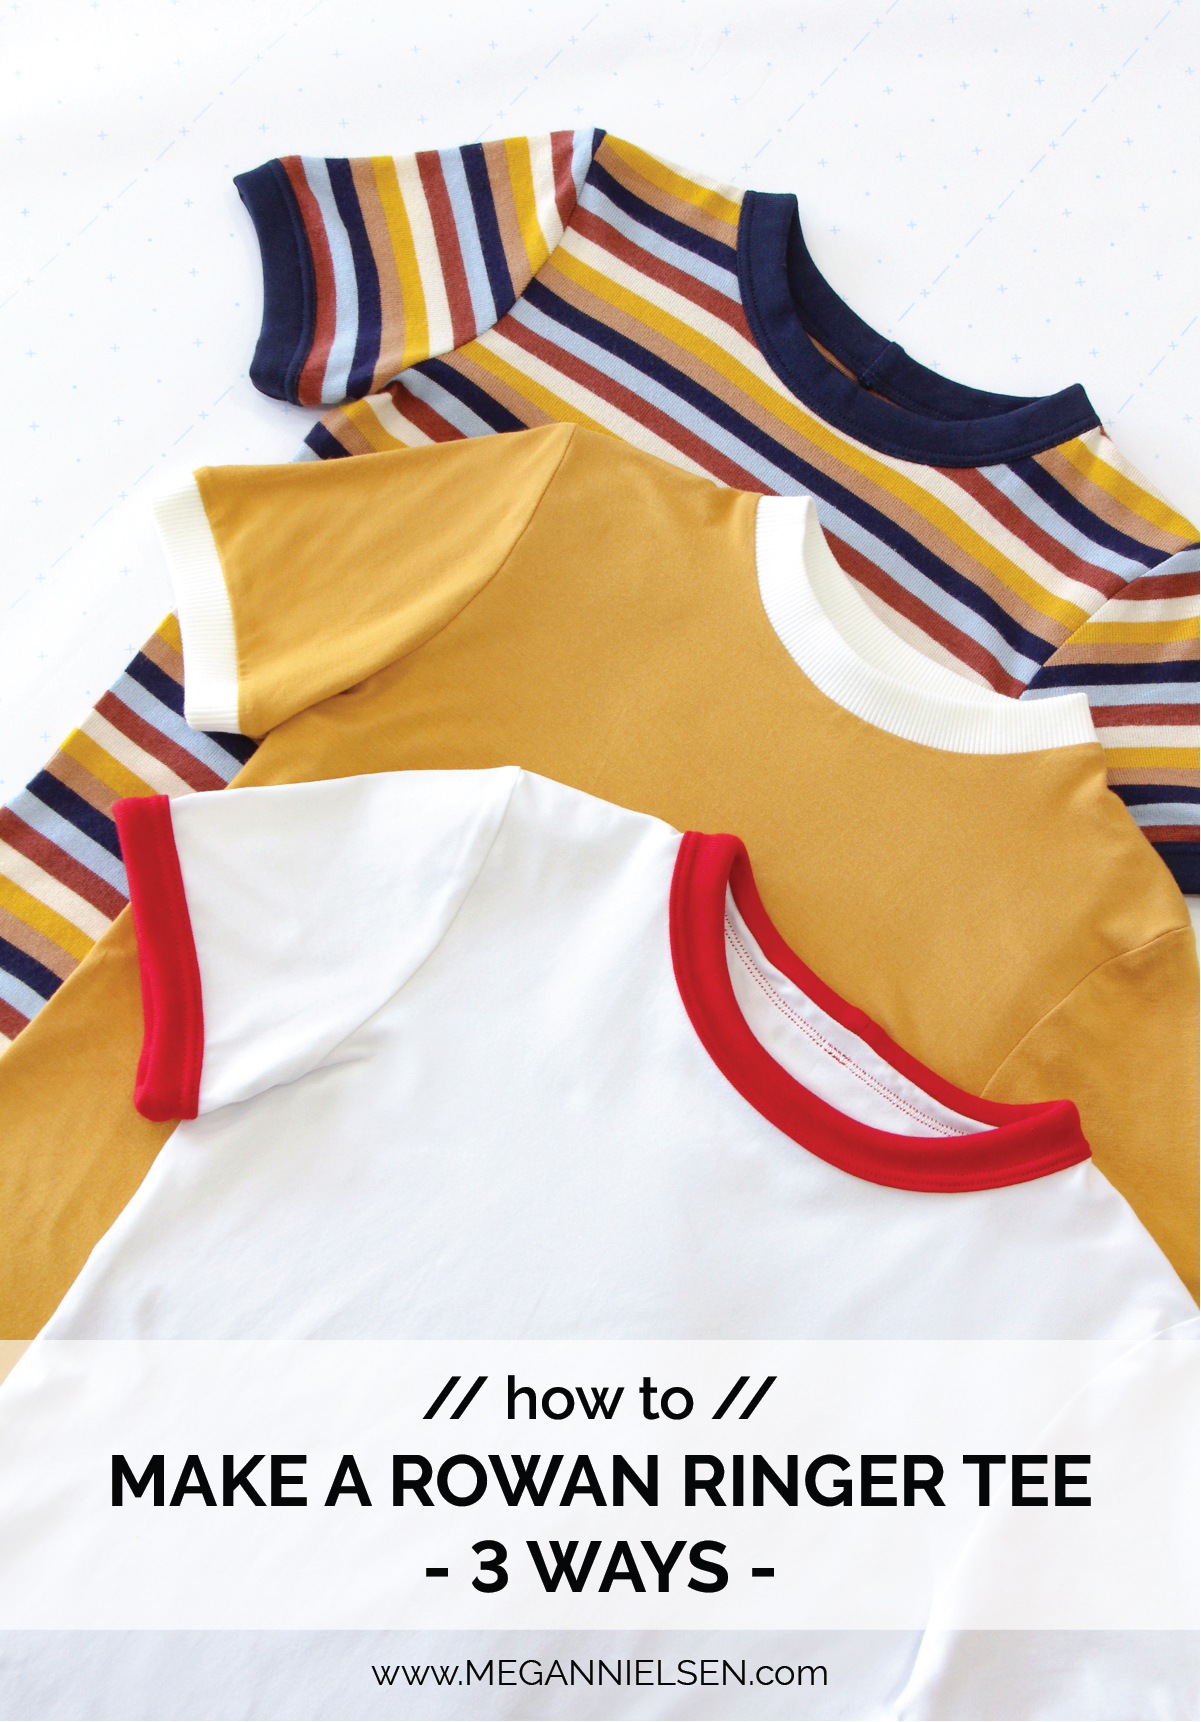 Megan Nielsen Patterns - How To Make A Rowan Ringer Tee - 3 Ways